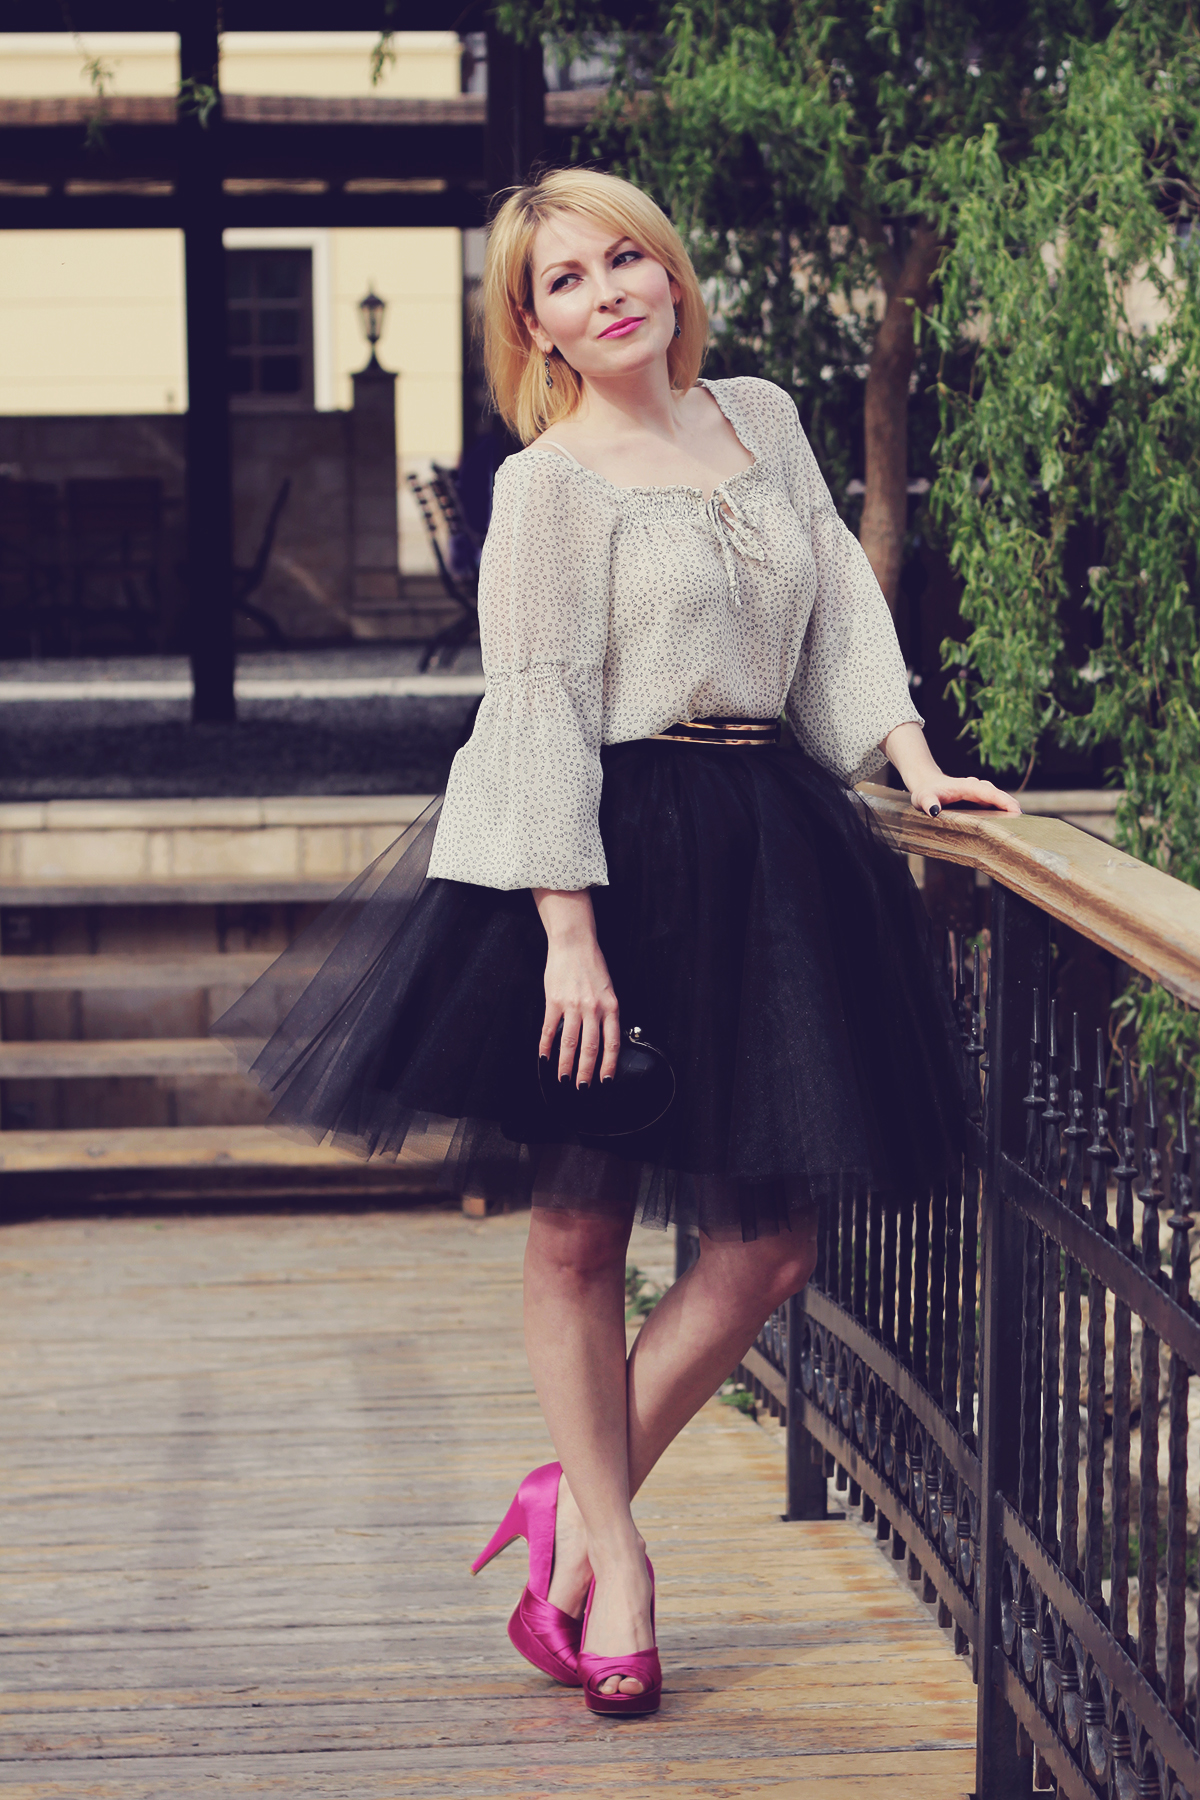 the tulle skirt and pink peep-toe pumps